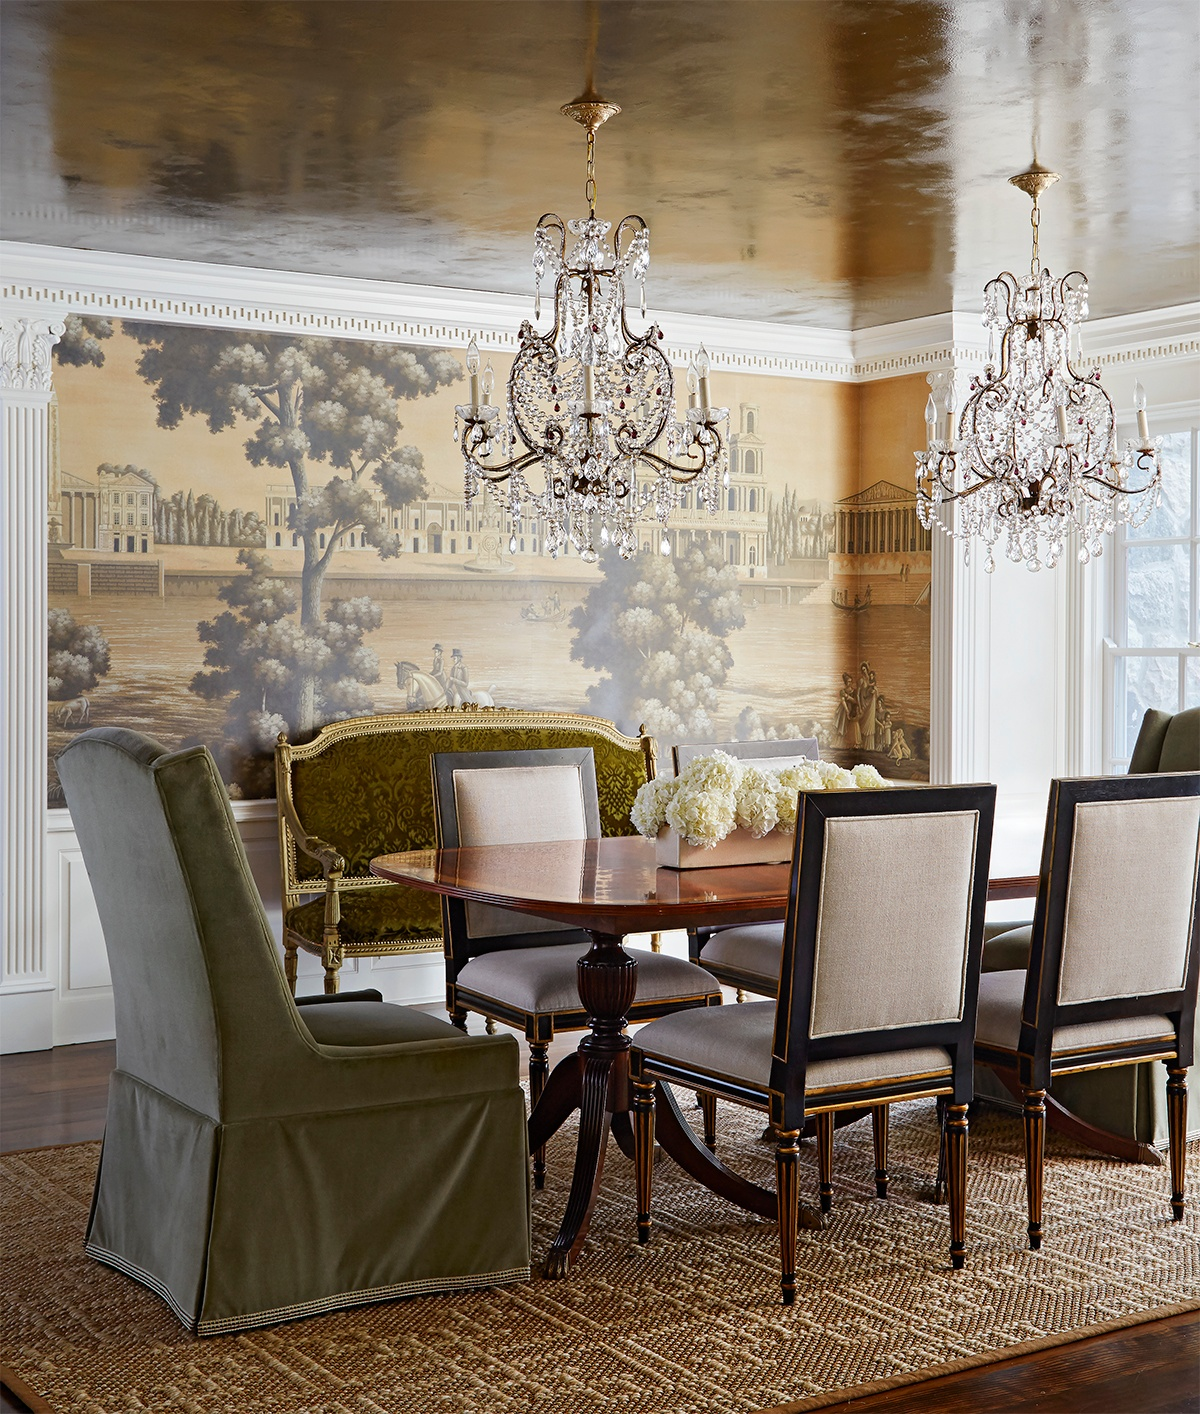 Asmara Designer Rugs Interview Corey Damen Jenkins - Dining Room